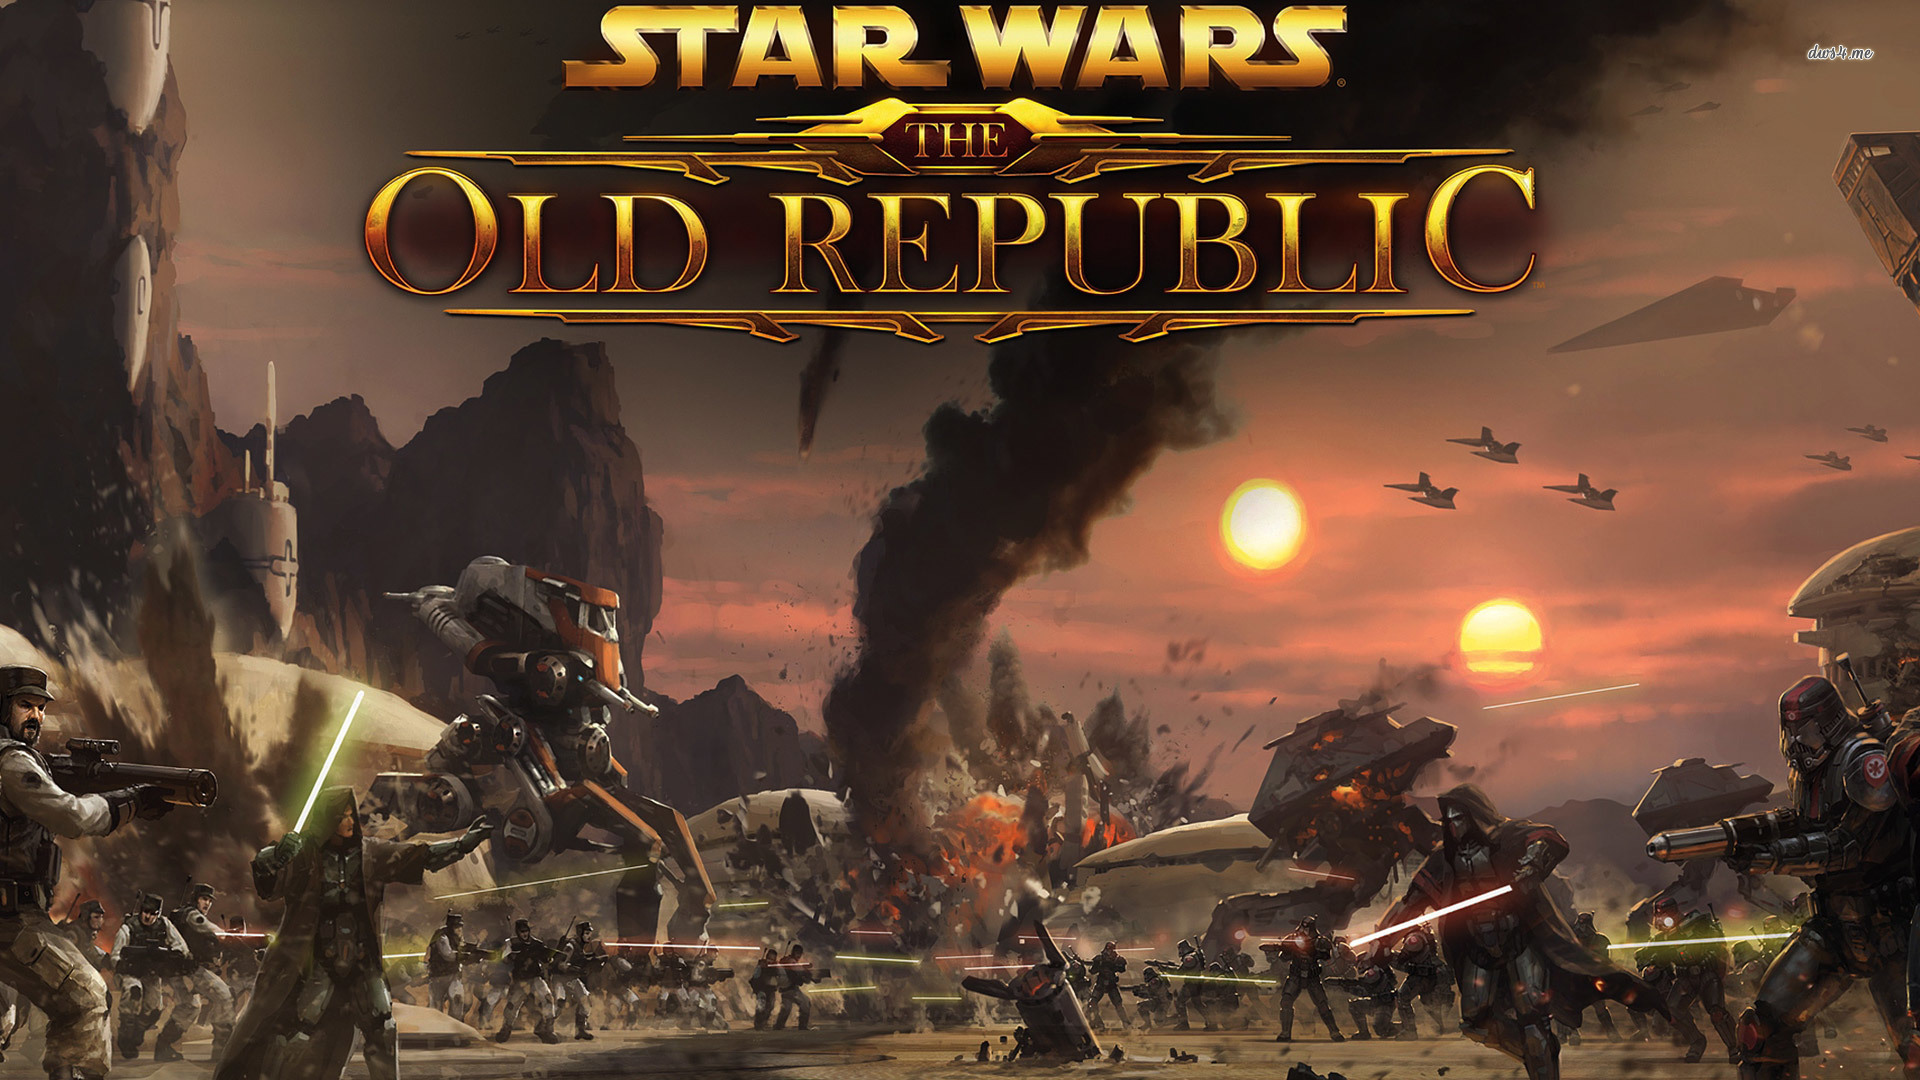 Star Wars The Old Republic Wallpapers Pictures Images 1920x1080